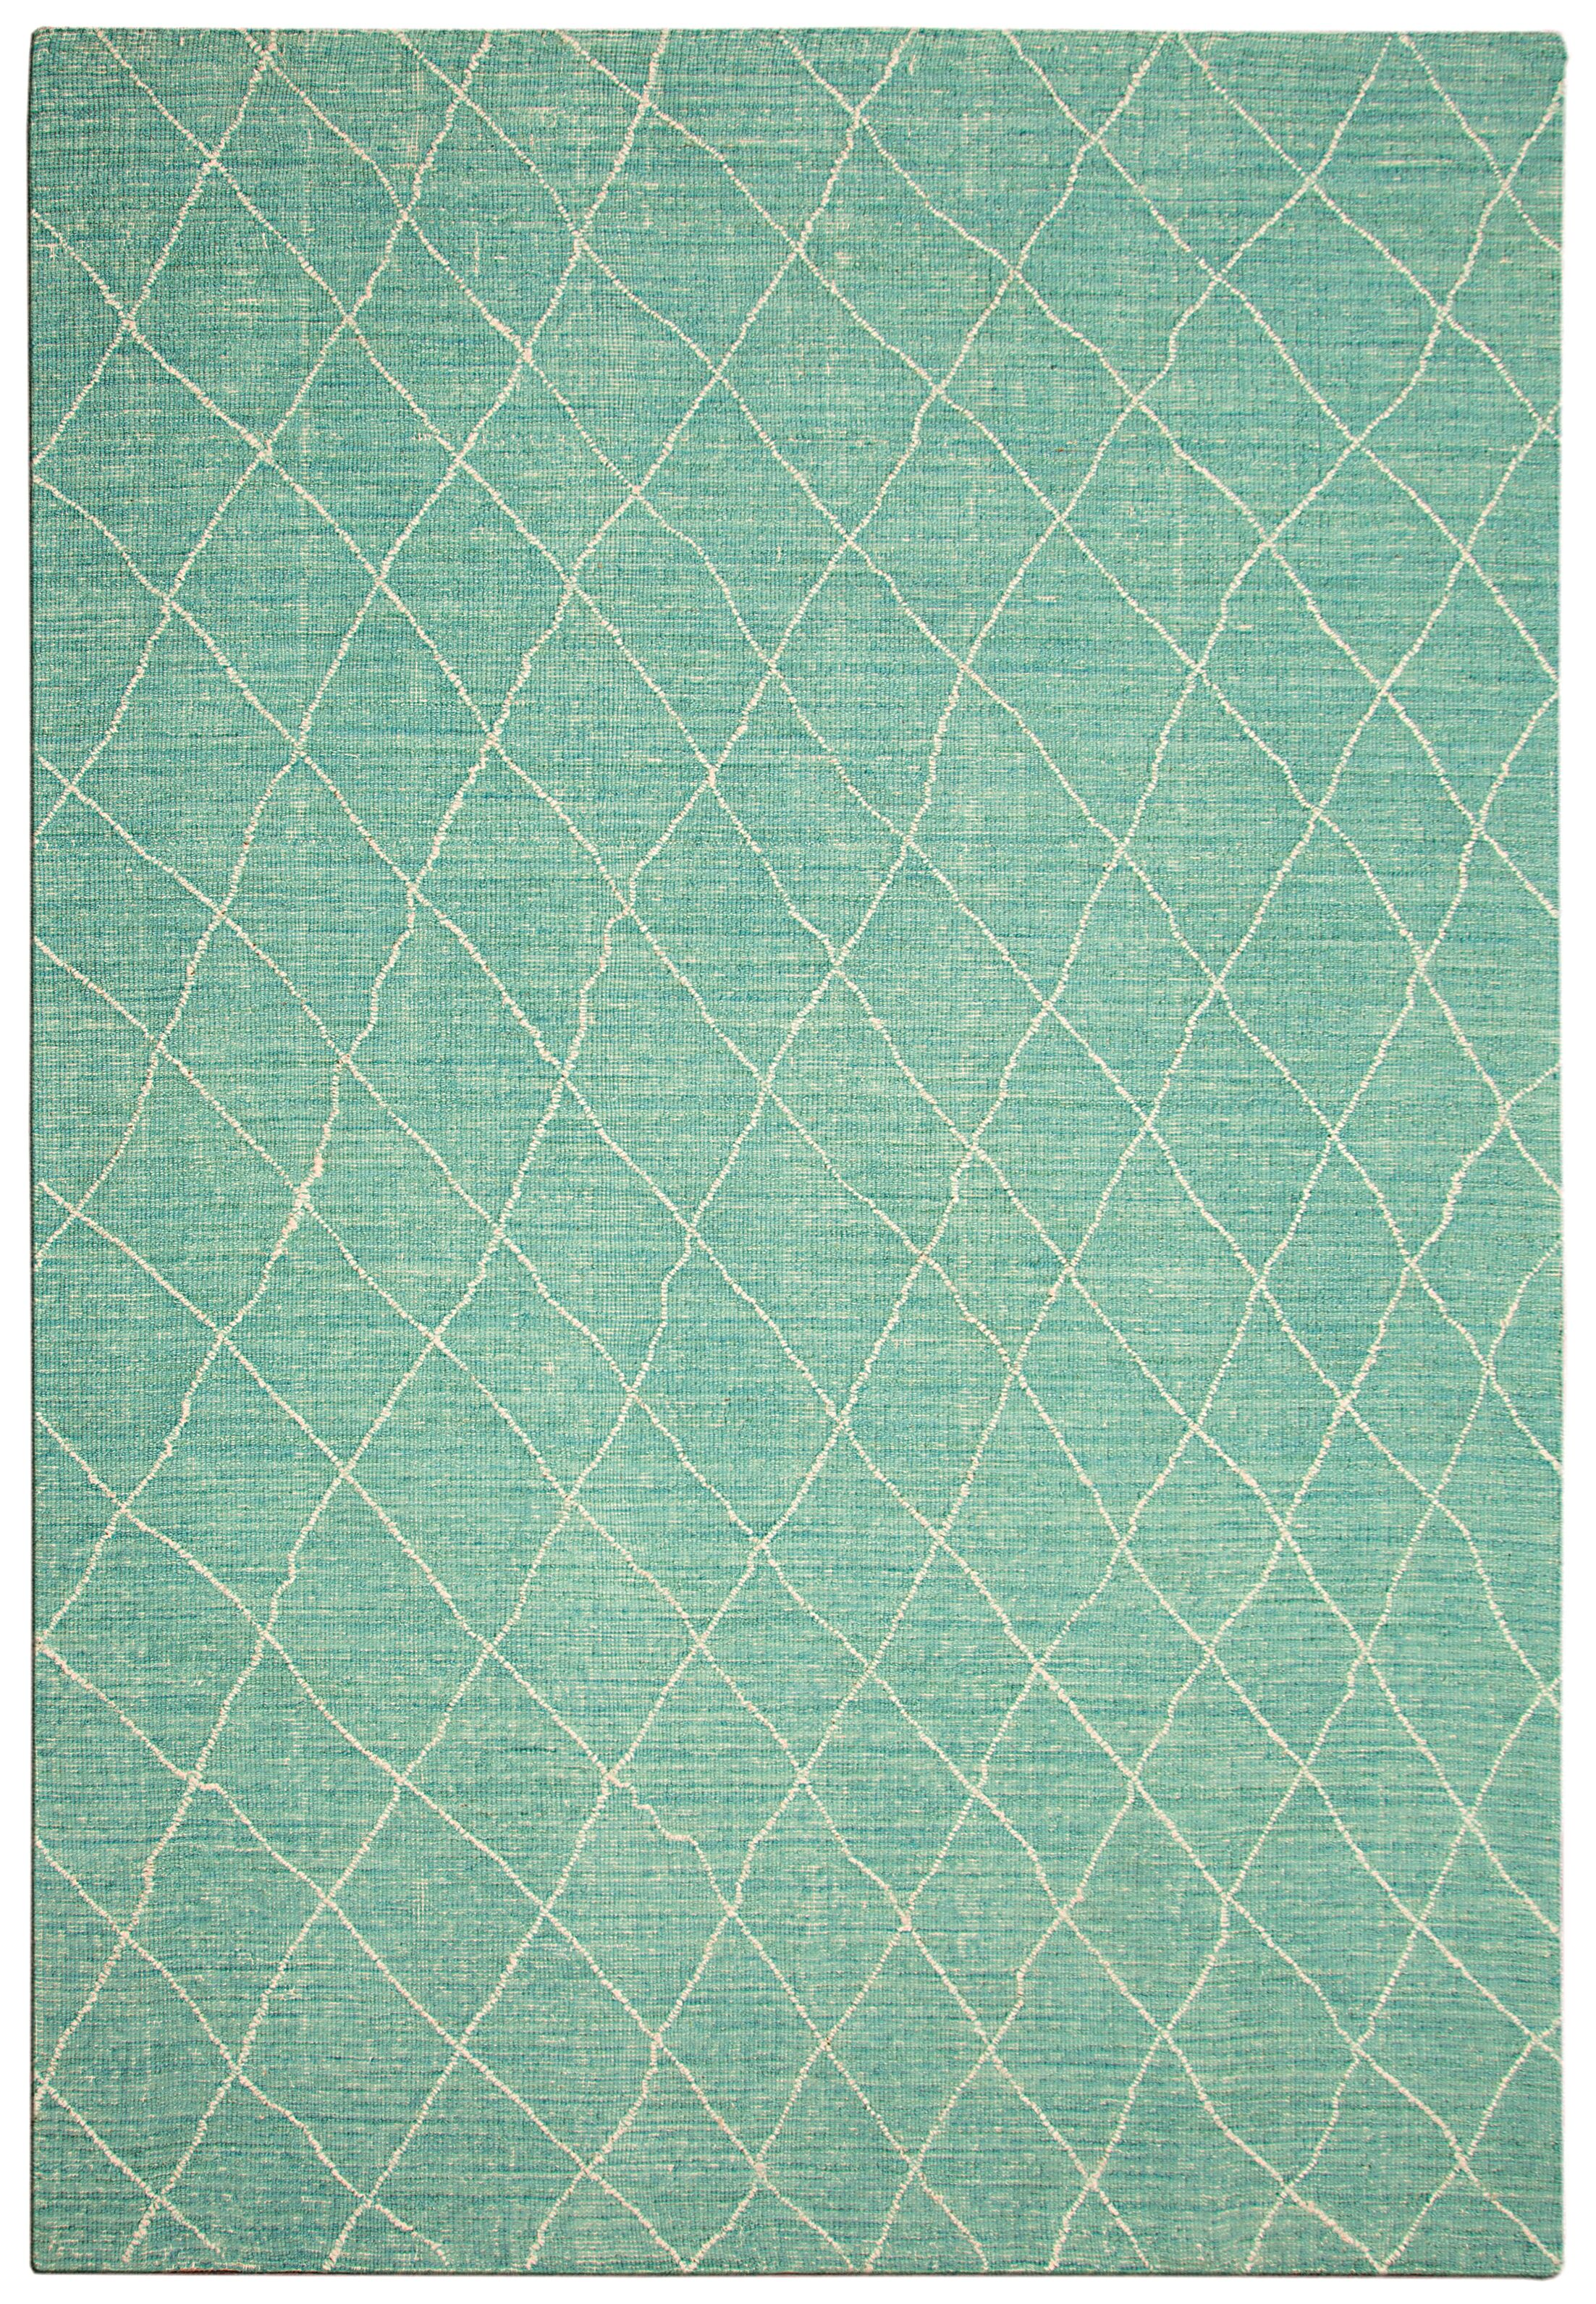 Kenza Hand-Woven Cotton/Wool Denim Blue Area Rug Rug Size: Rectangle 7'6